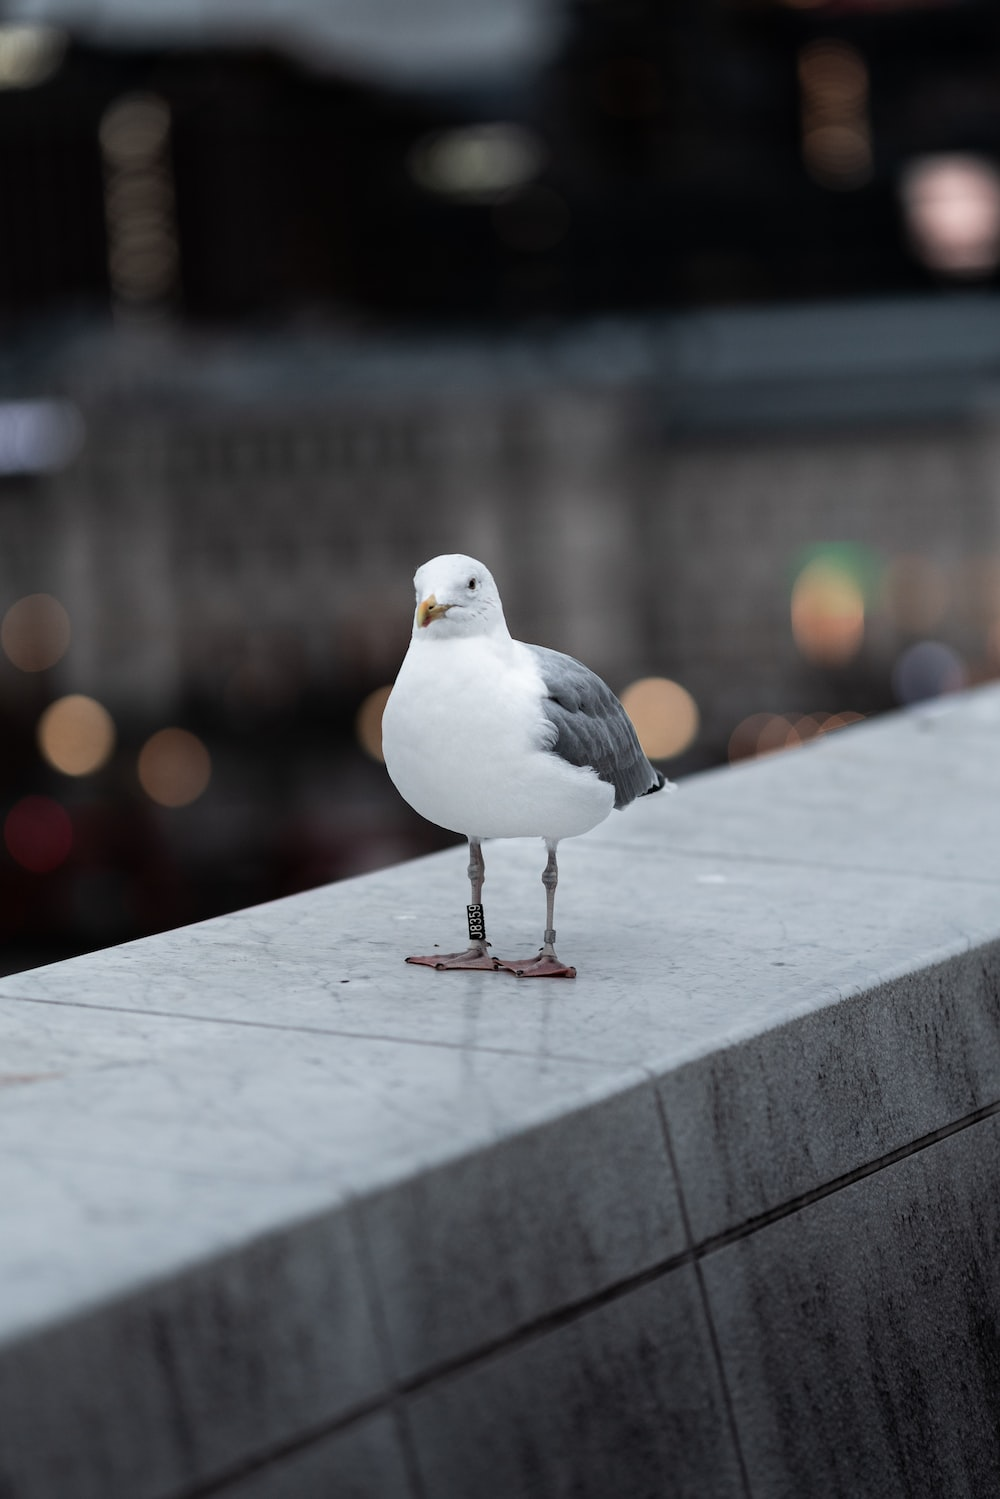 white and gray bird on gray concrete surface during daytime